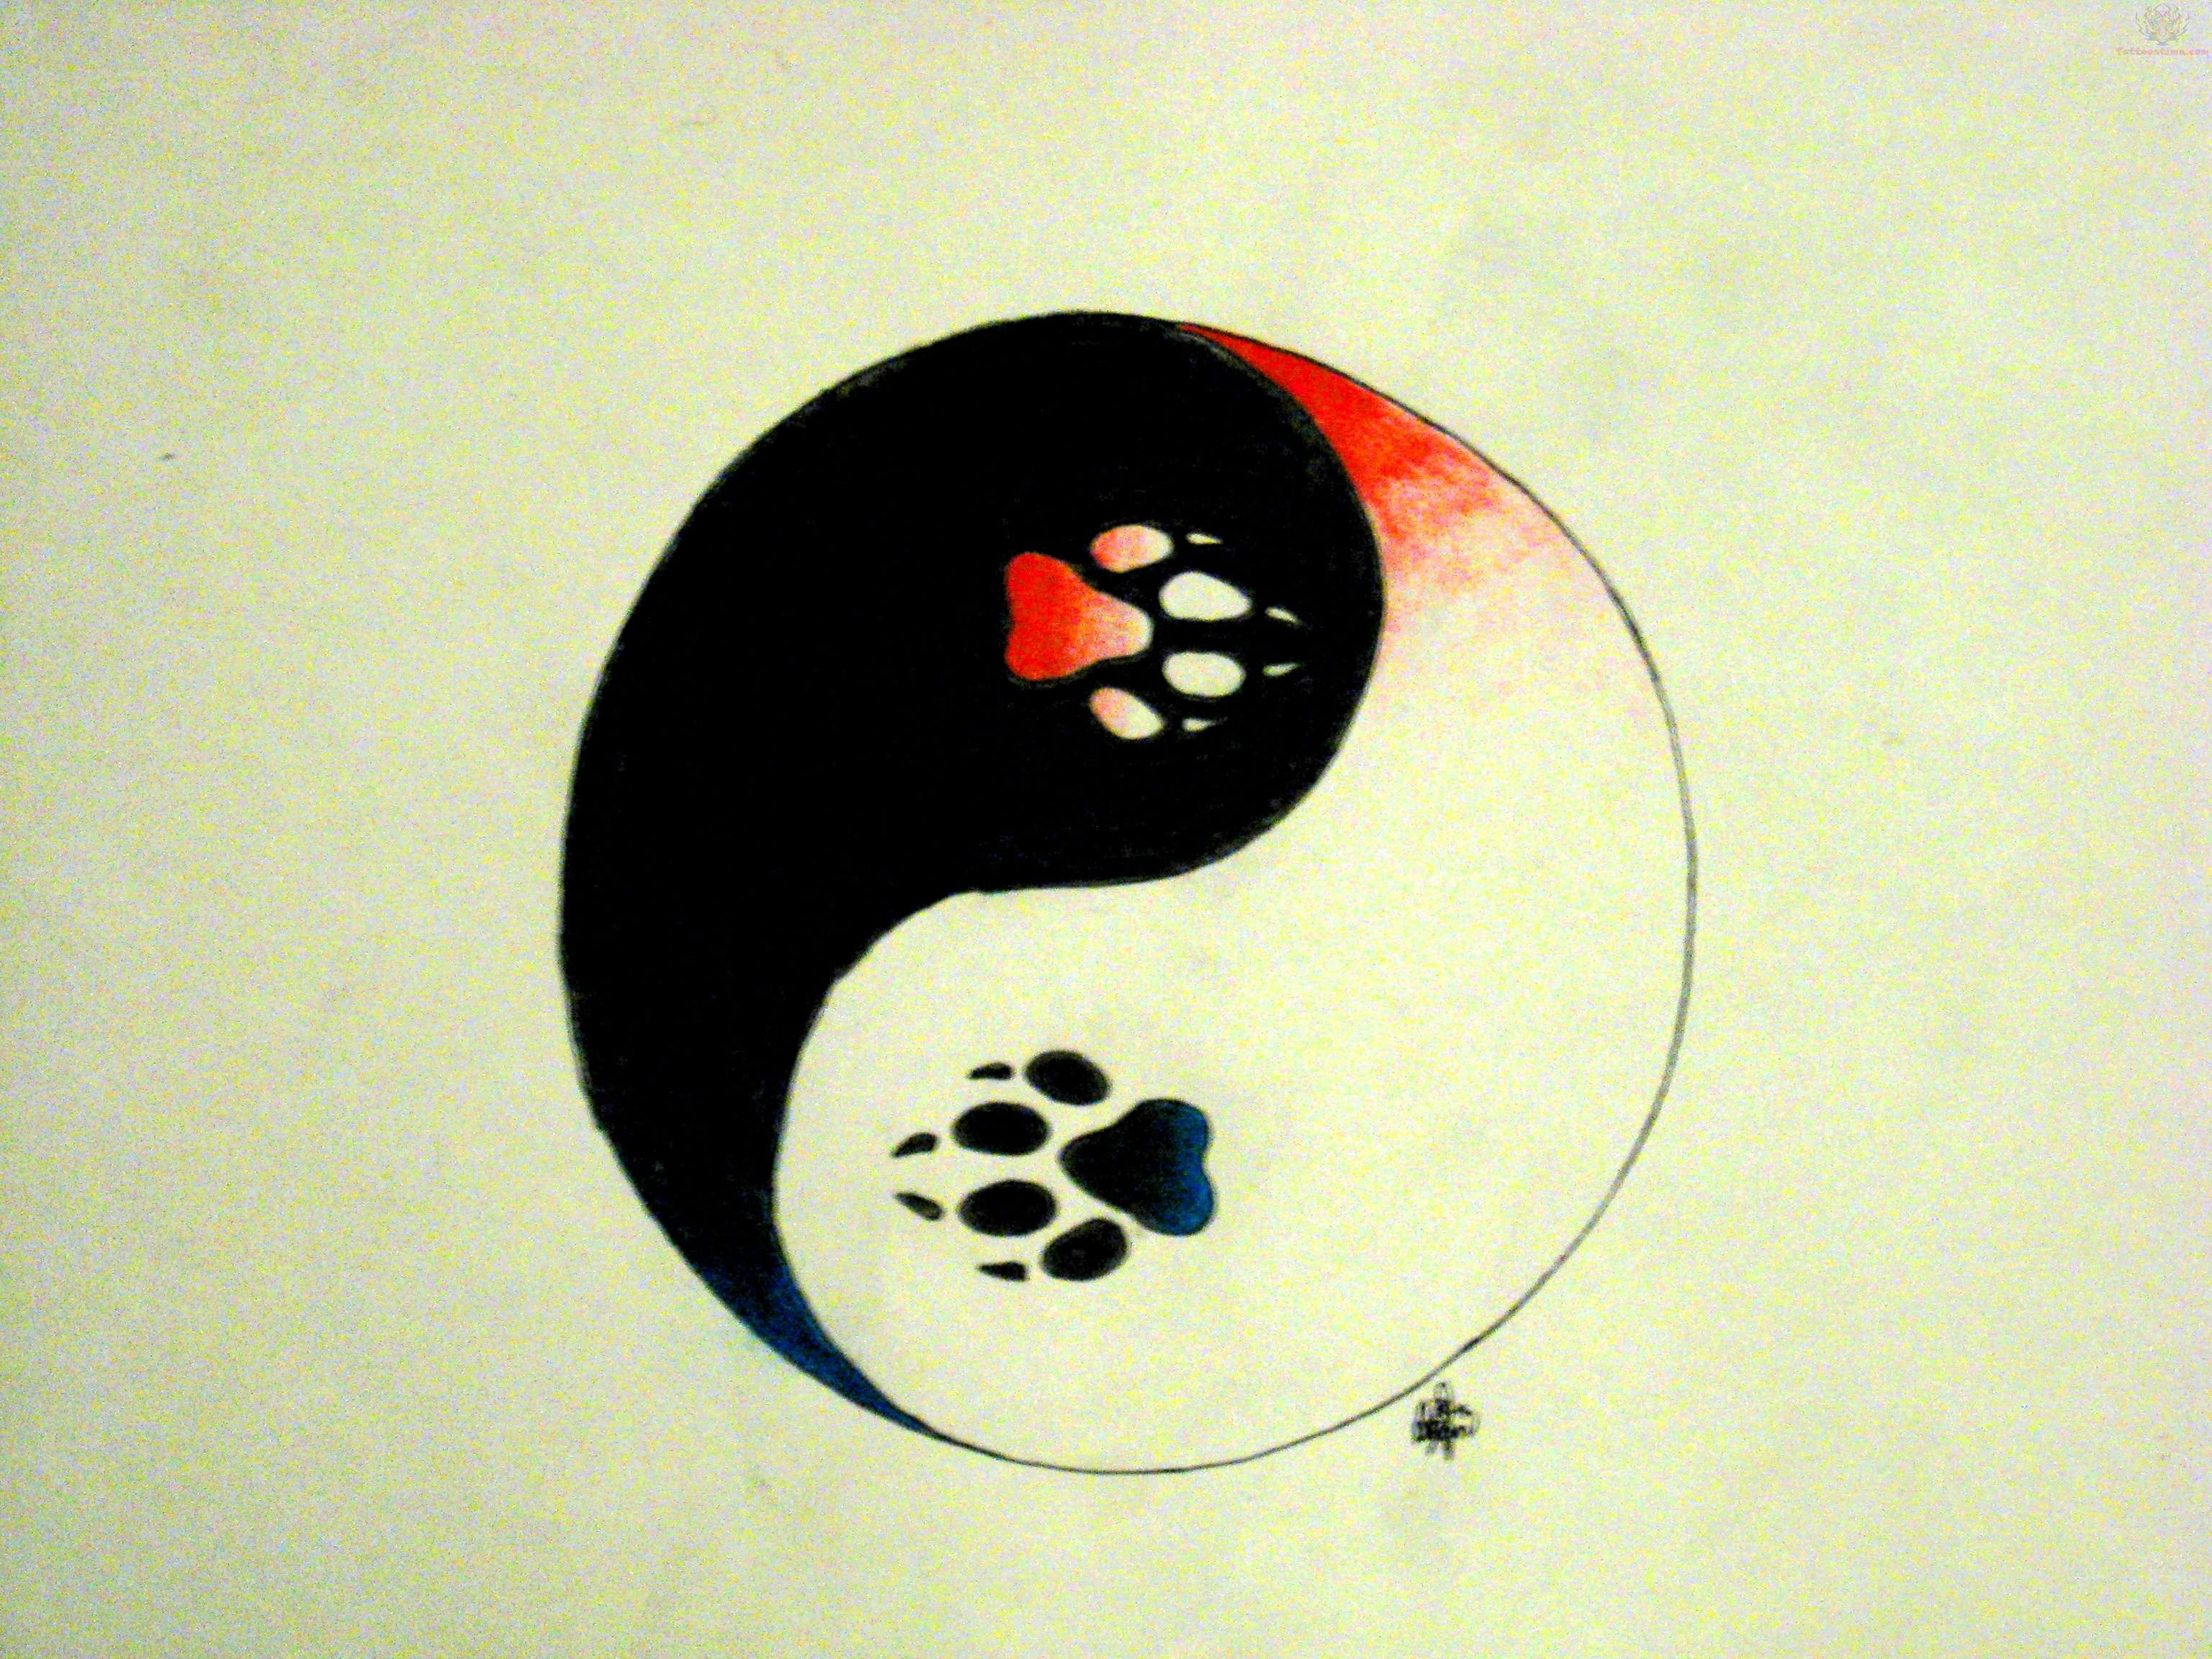 Pawprints Ying Yang Tattoo